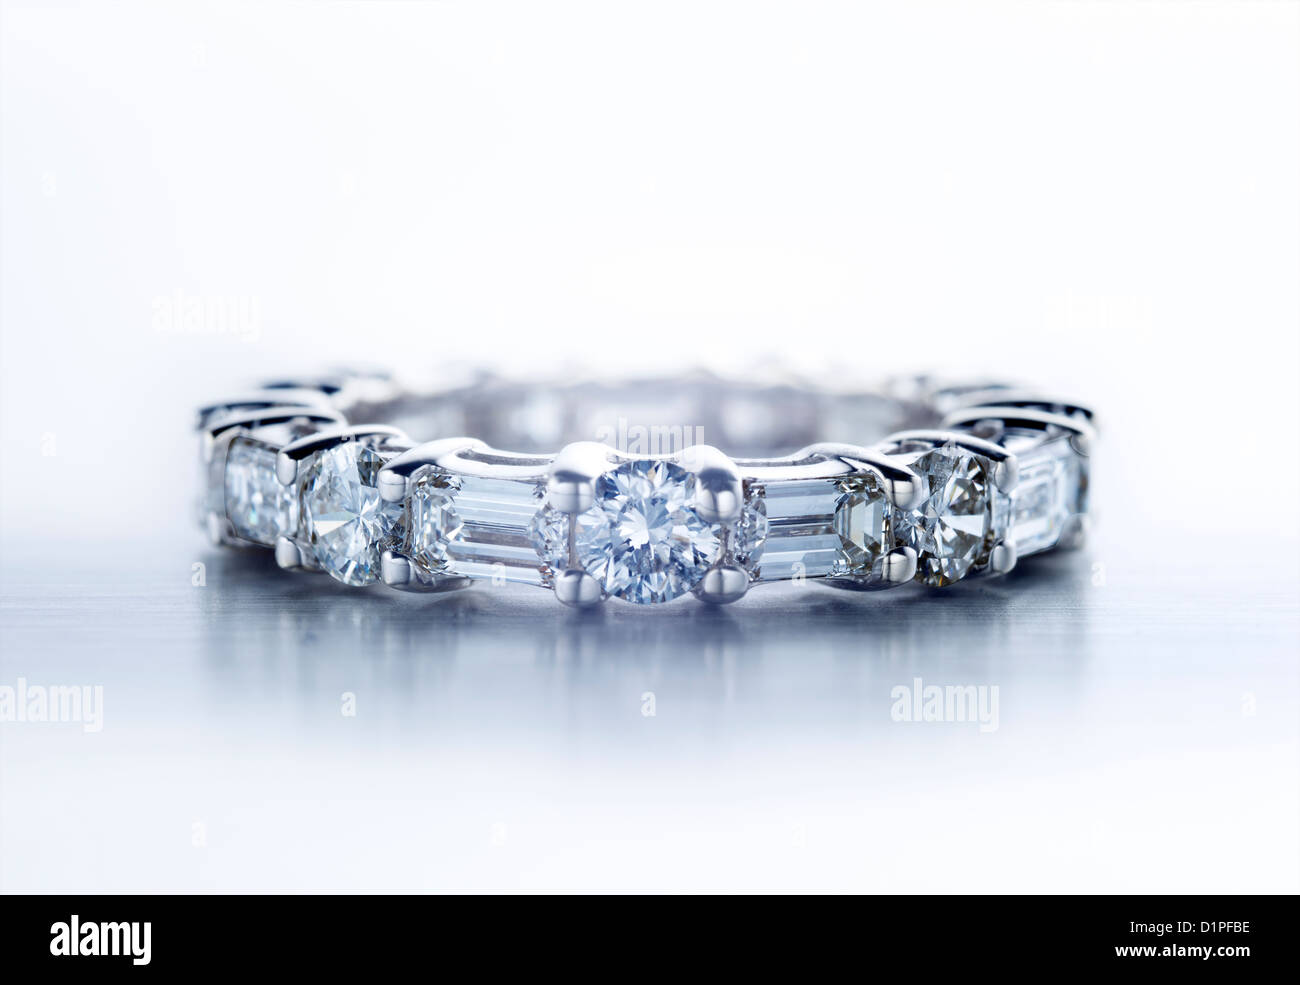 Diamond ring with round and baguette shaped diamonds - Stock Image